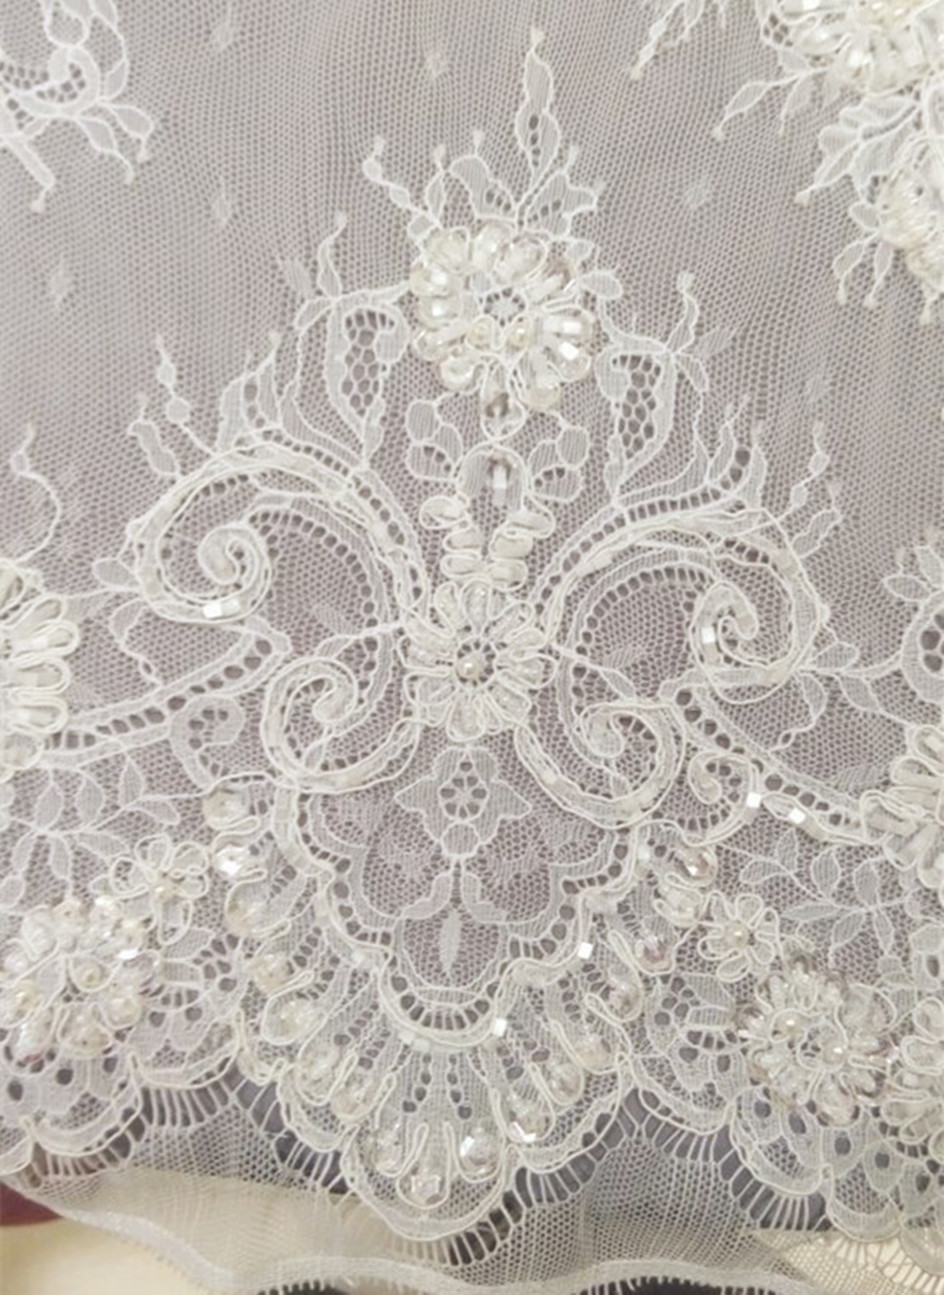 Sequins heavy wedding beaded lace fabric for formal dress fabric